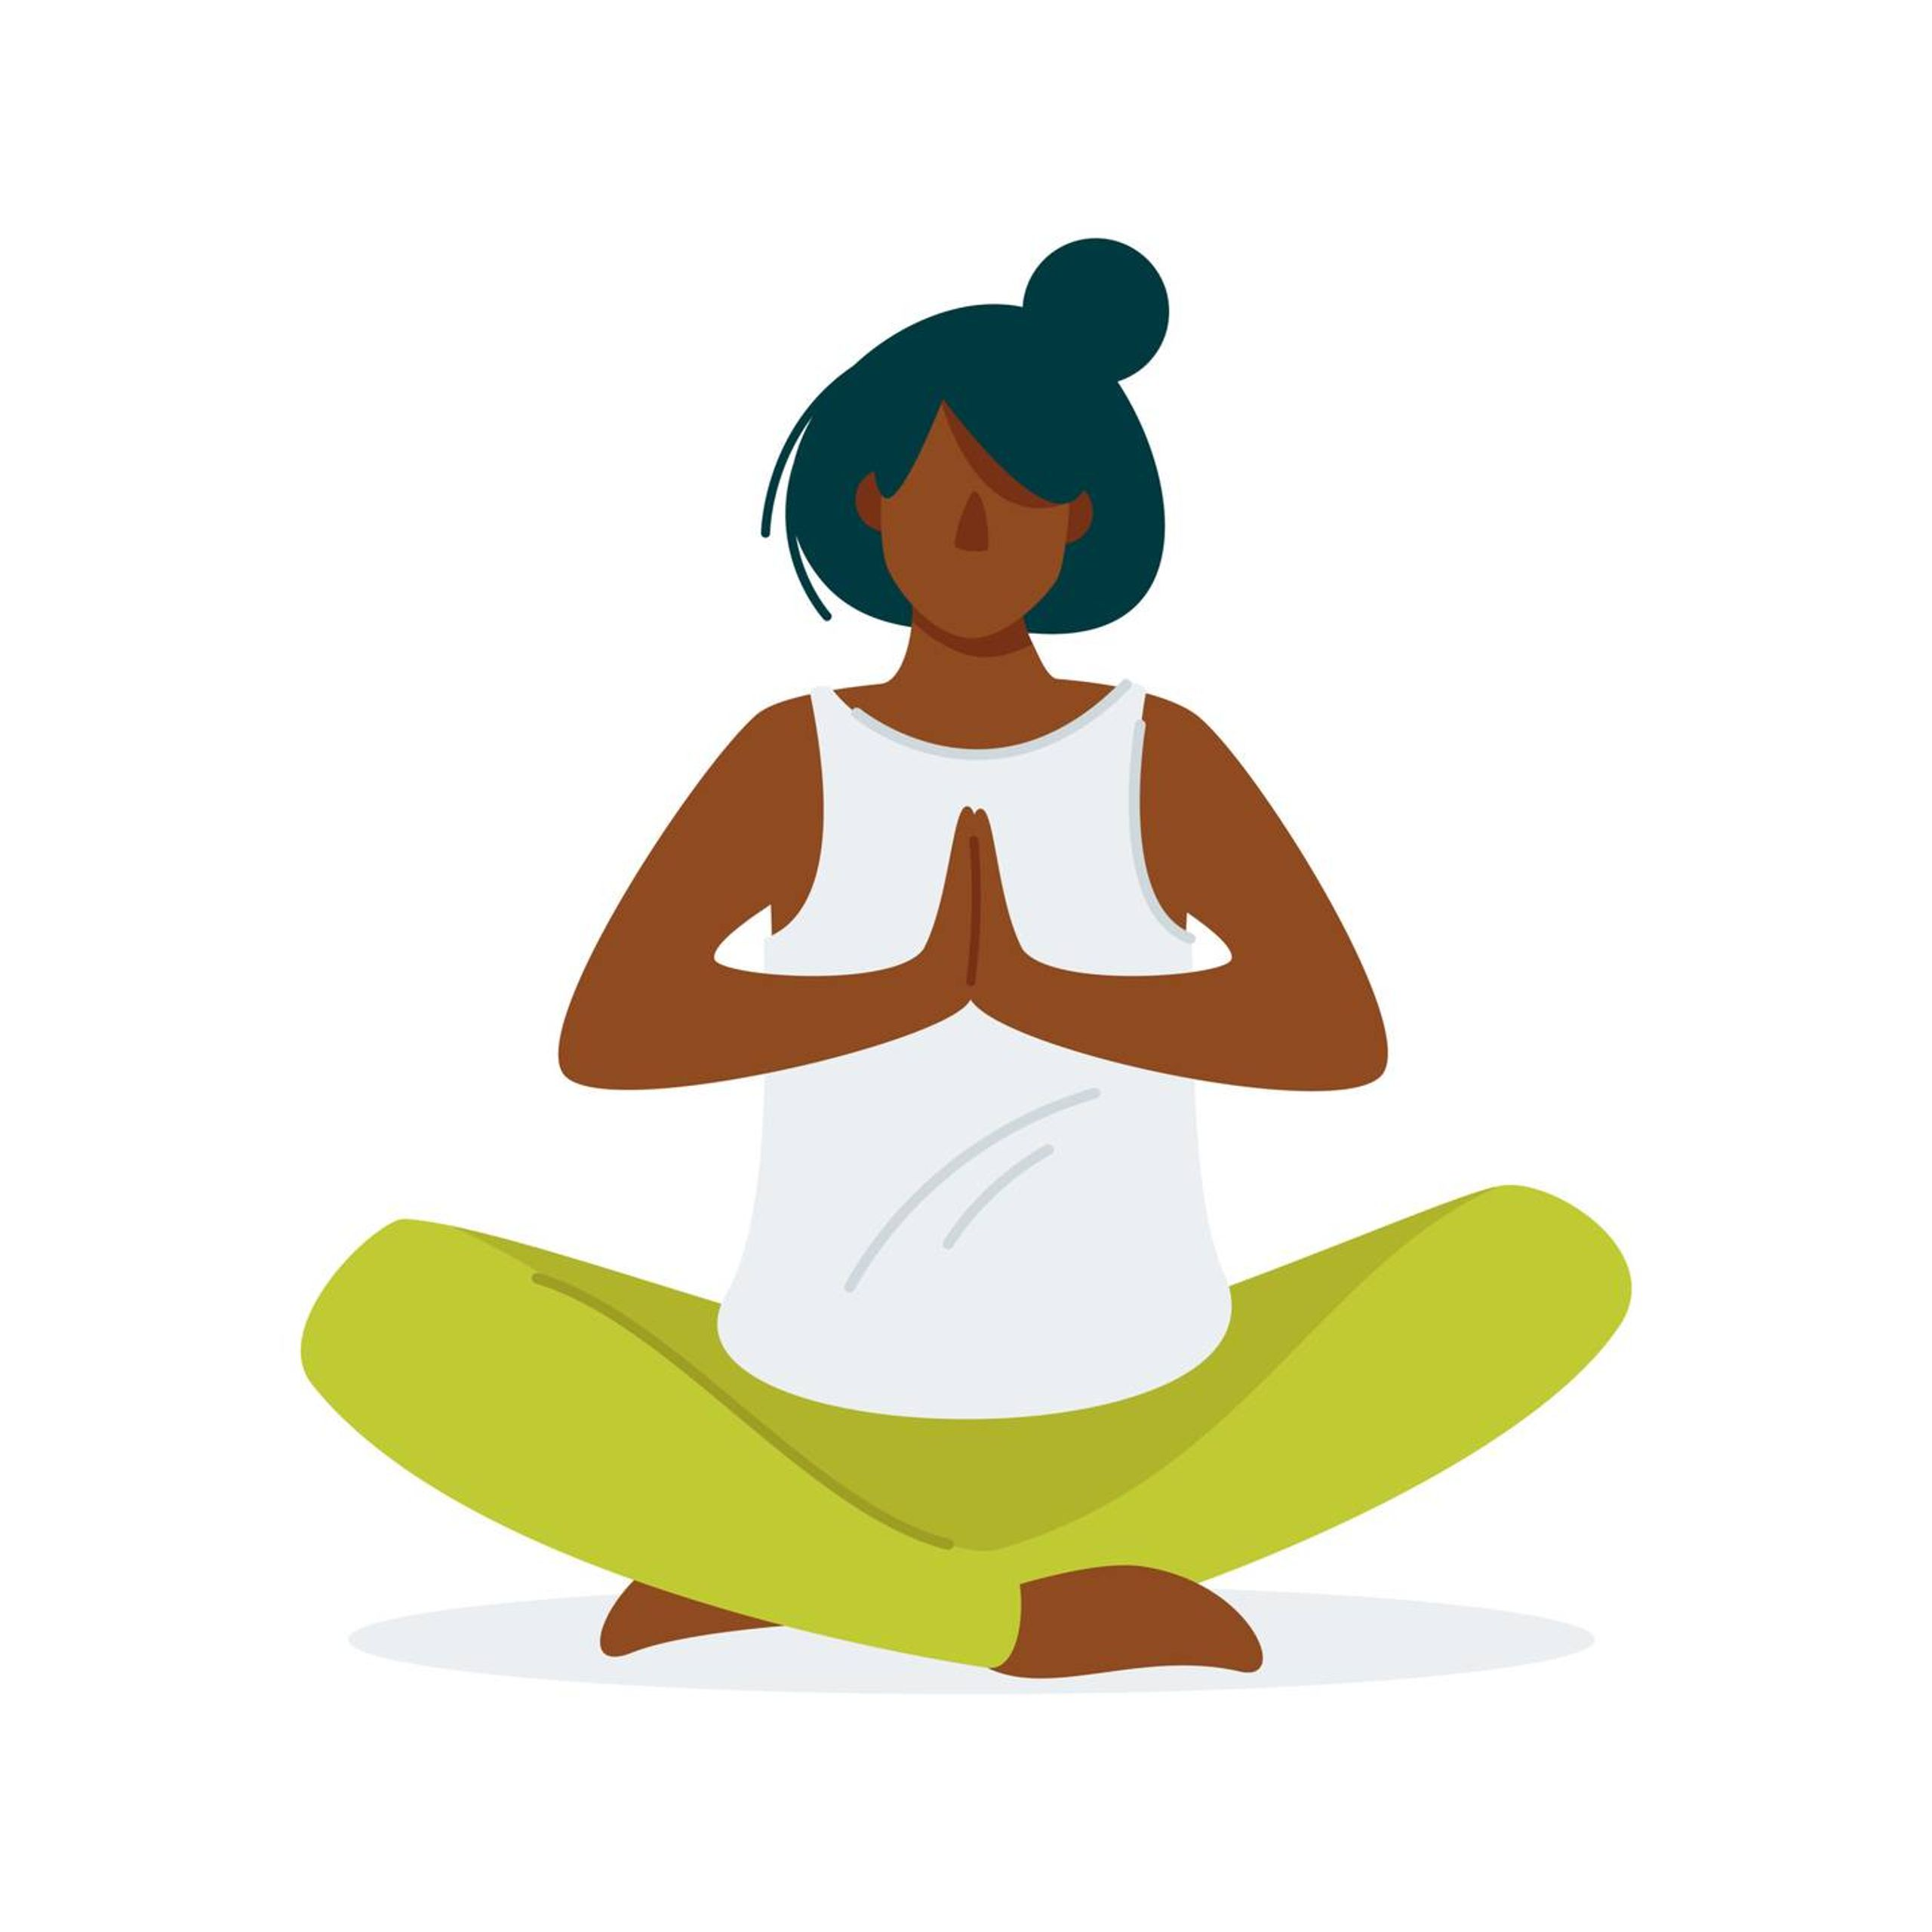 Illustration of a woman sitting and doing a meditative yoga pose, self-care, Rewire